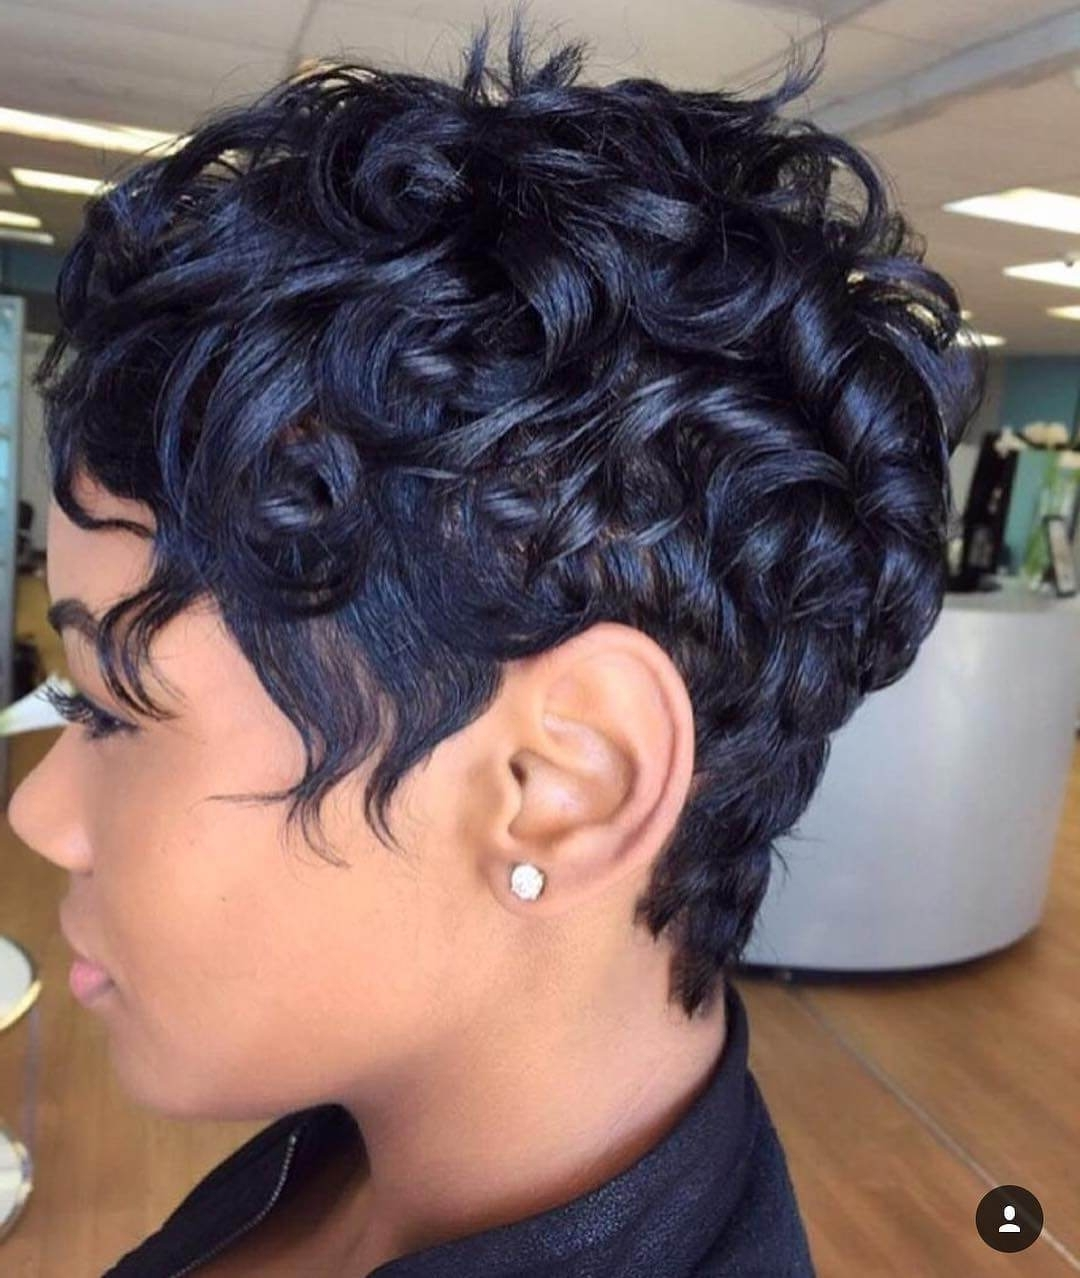 12 Curly Pixie Cut For Short Or Medium Length Hair Intended For Best And Newest Messy Tapered Pixie Haircuts (View 8 of 15)